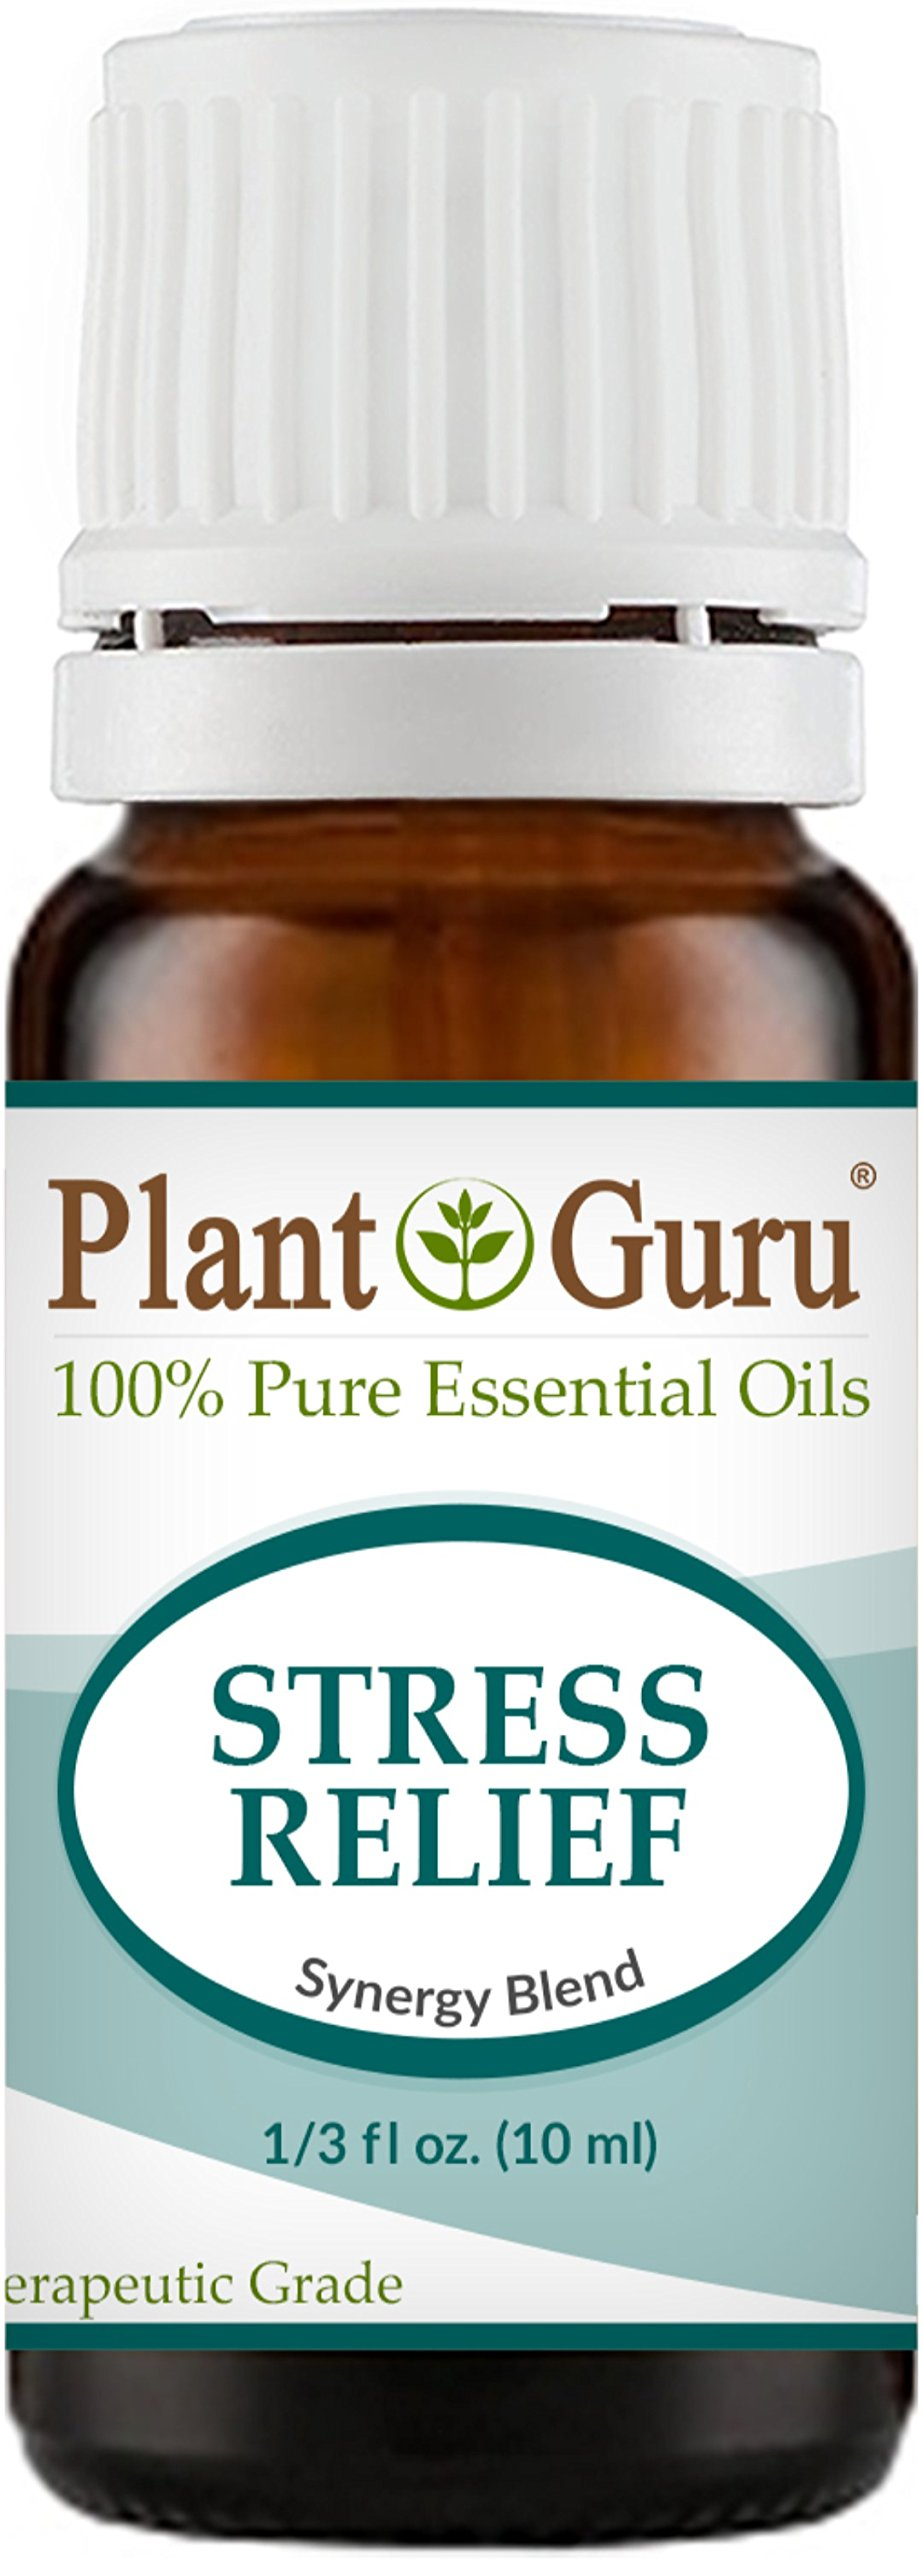 Stress Relief Synergy Blend Essential Oil. 10 ml. 100% Pure, Undiluted, Therapeutic Grade. Anxiety, Depression, Relaxation, Boost Mood, Uplifting, Calming, Aromatherapy, Diffuser.